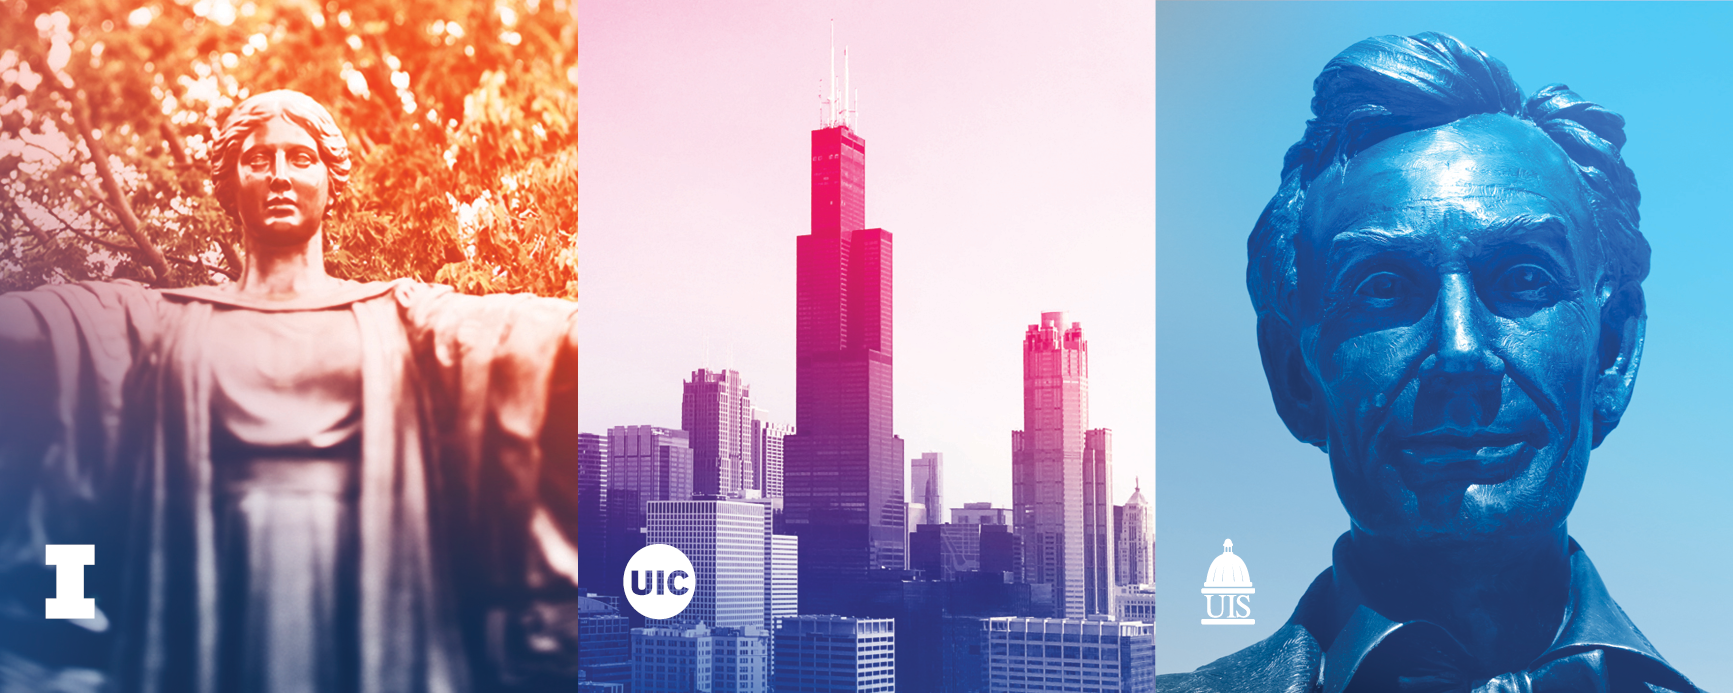 Alma Mater, Chicago Skyline, Lincoln bust - university logos